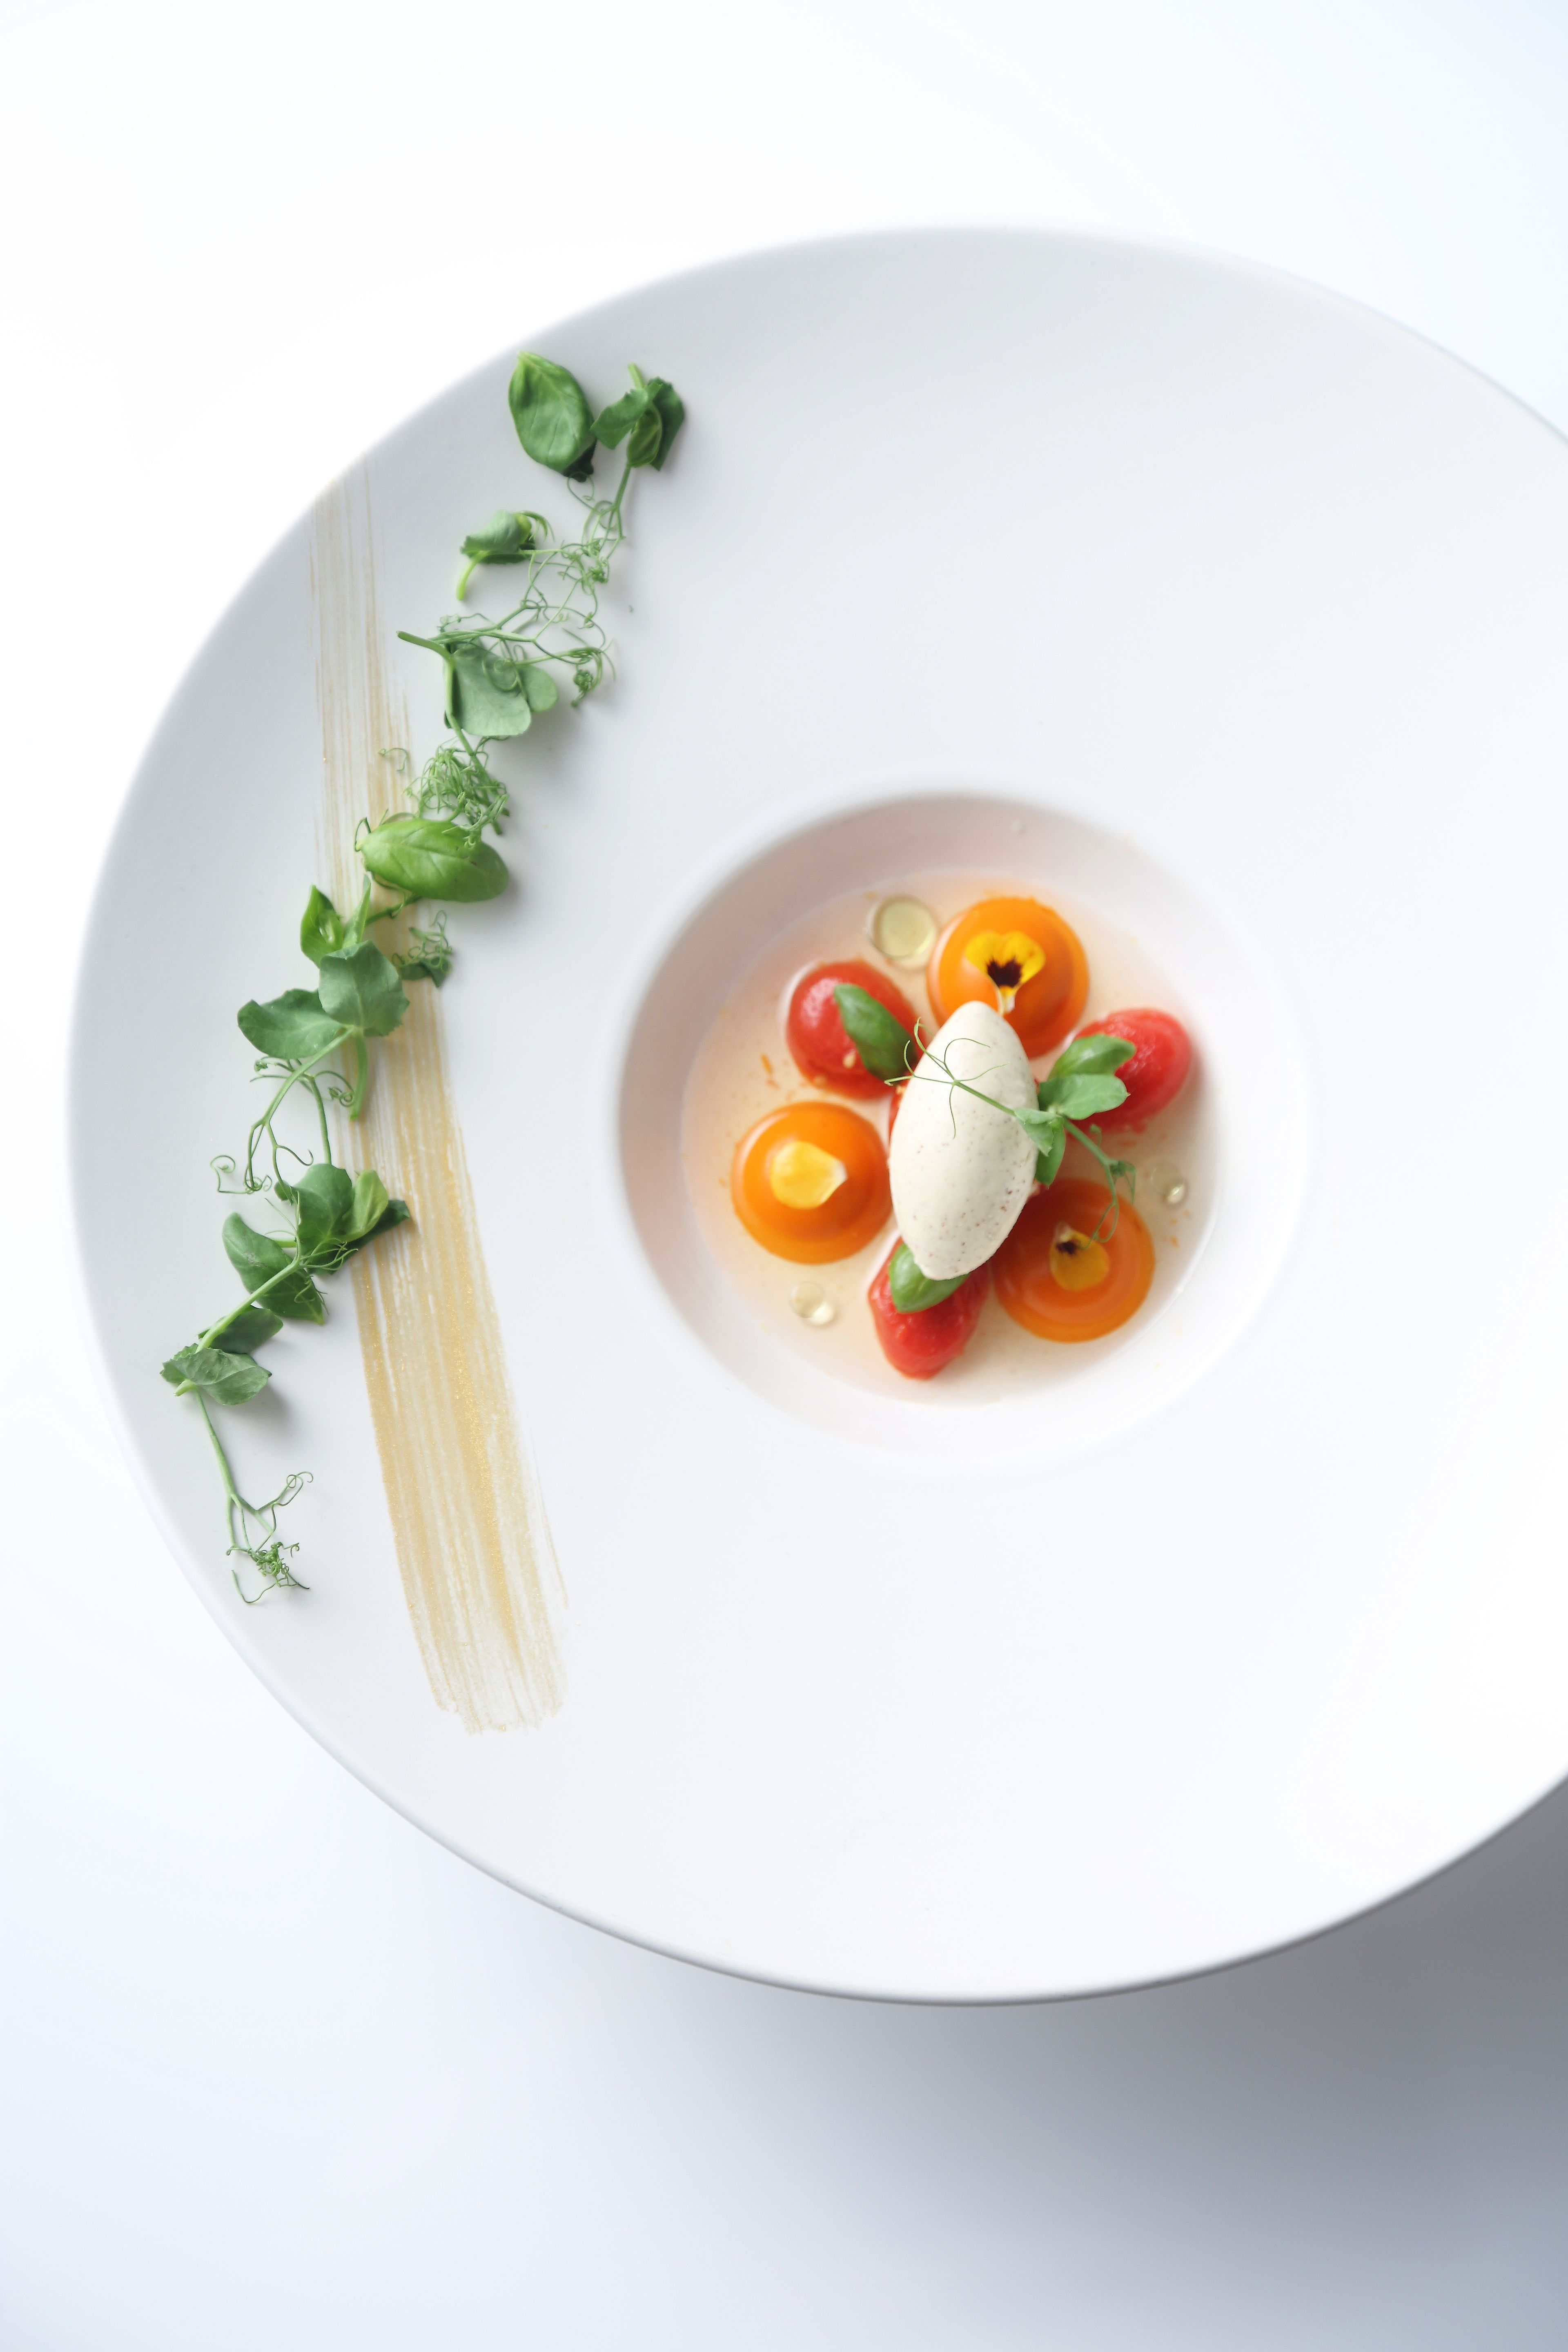 Decoration Assiette Restaurant Tate Tate Dining Room Fine Dining Hong Kong Vicky Lau Plating